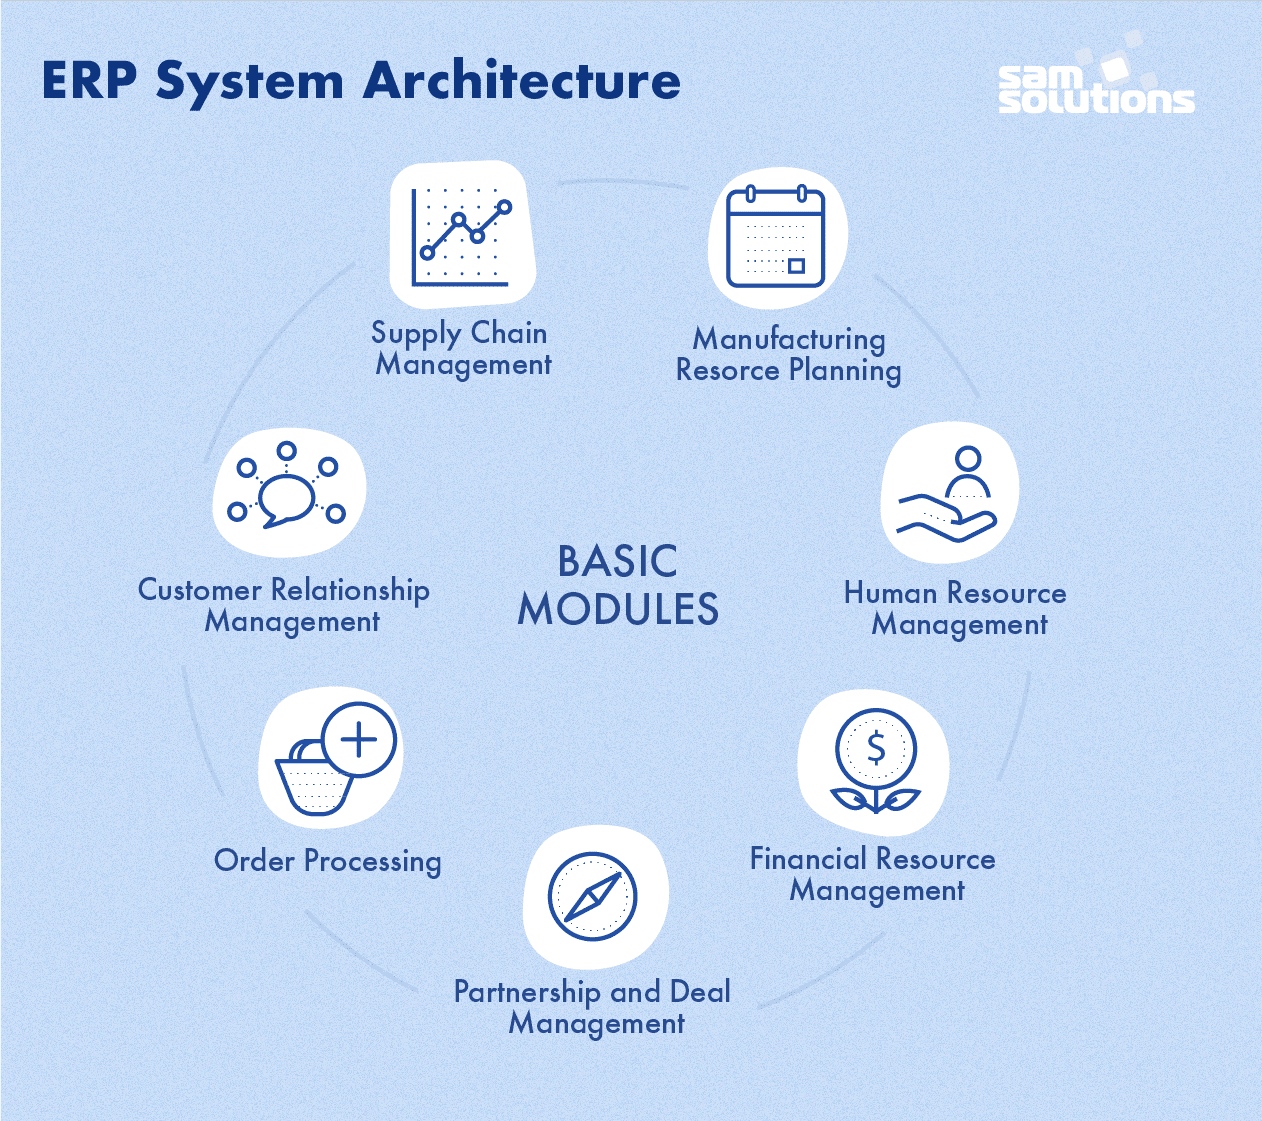 ERP-basic-modules-photo